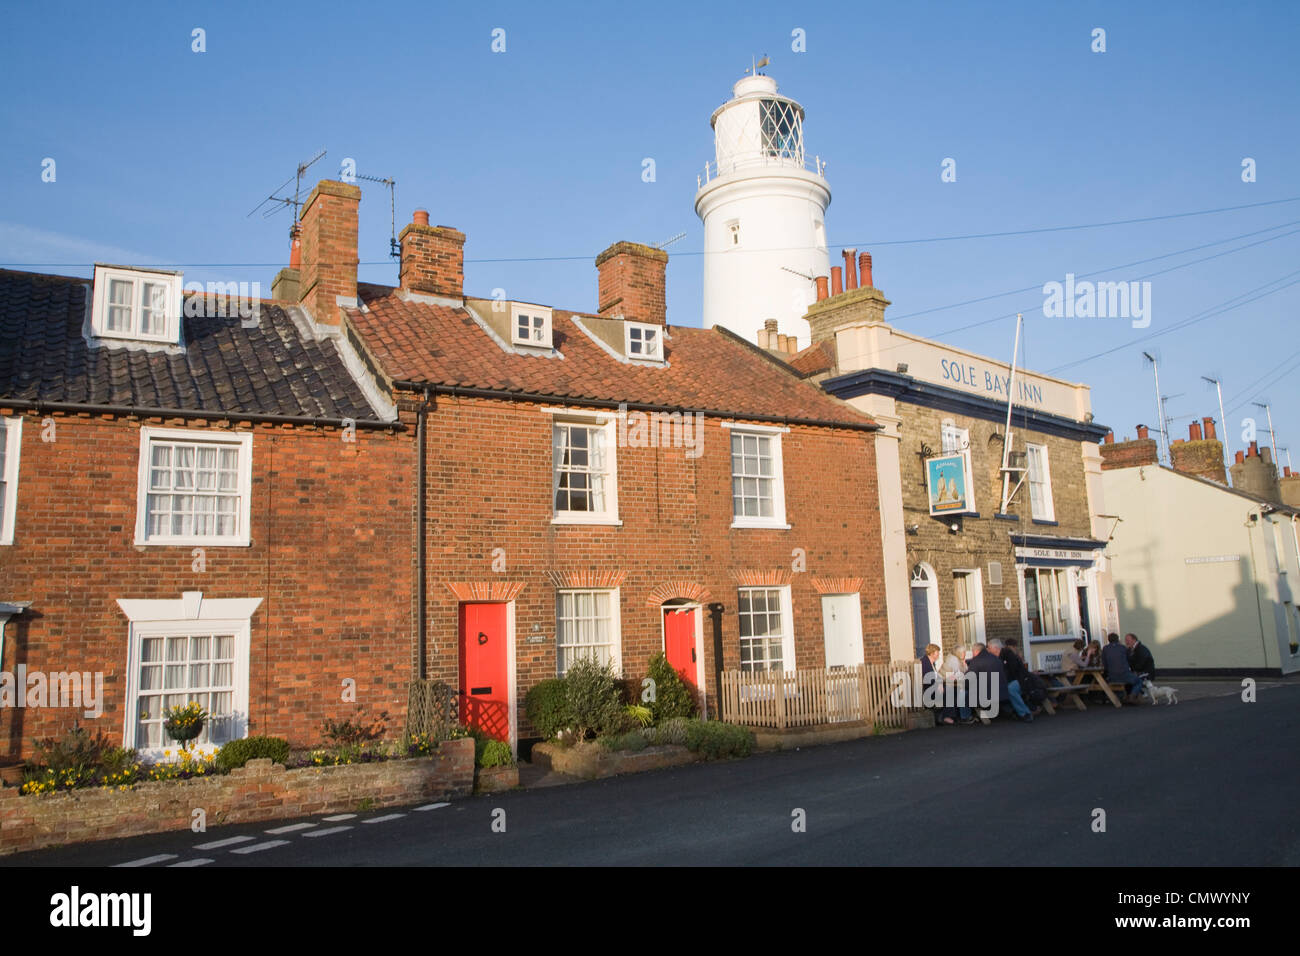 Cottages Lighthouse and Sole Bay Inn, Southwold, Suffolk, England - Stock Image